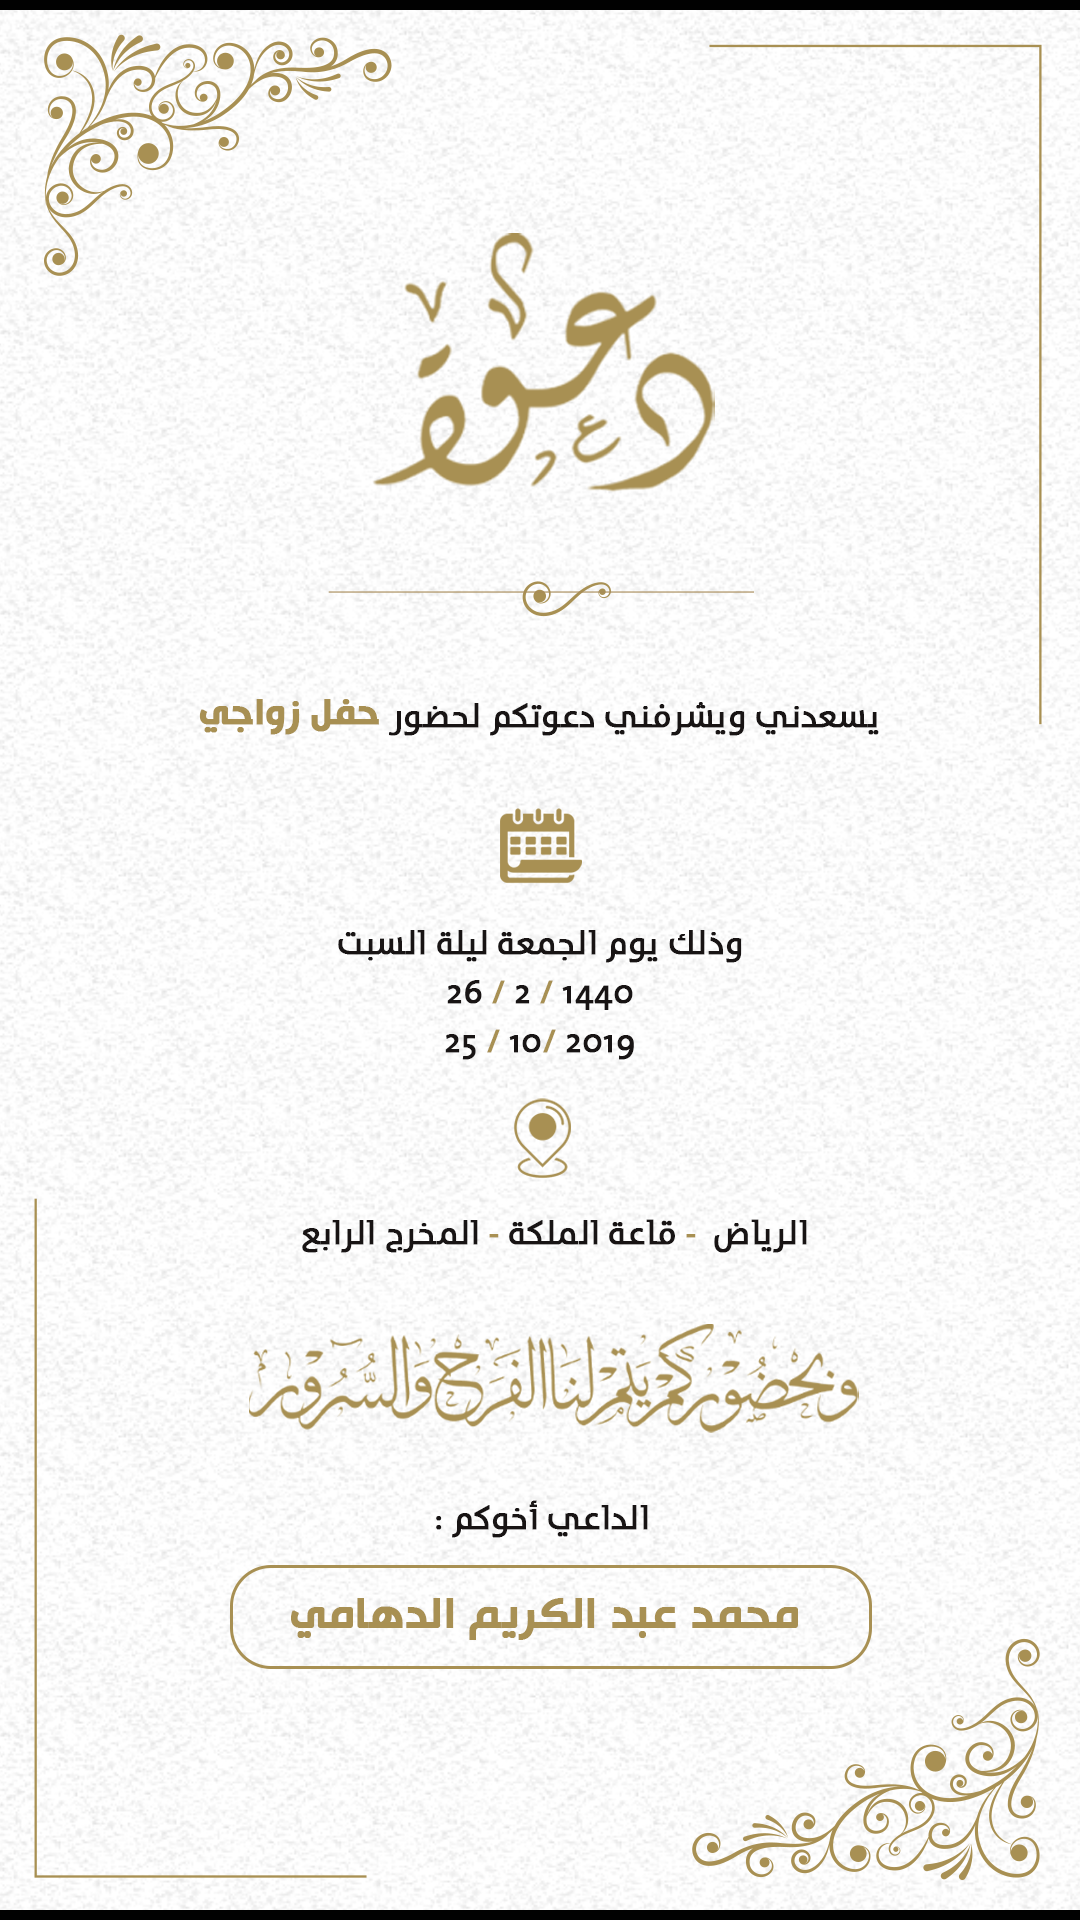 دعوة خاصة Wedding Logo Design Free Business Card Design Wedding Logos